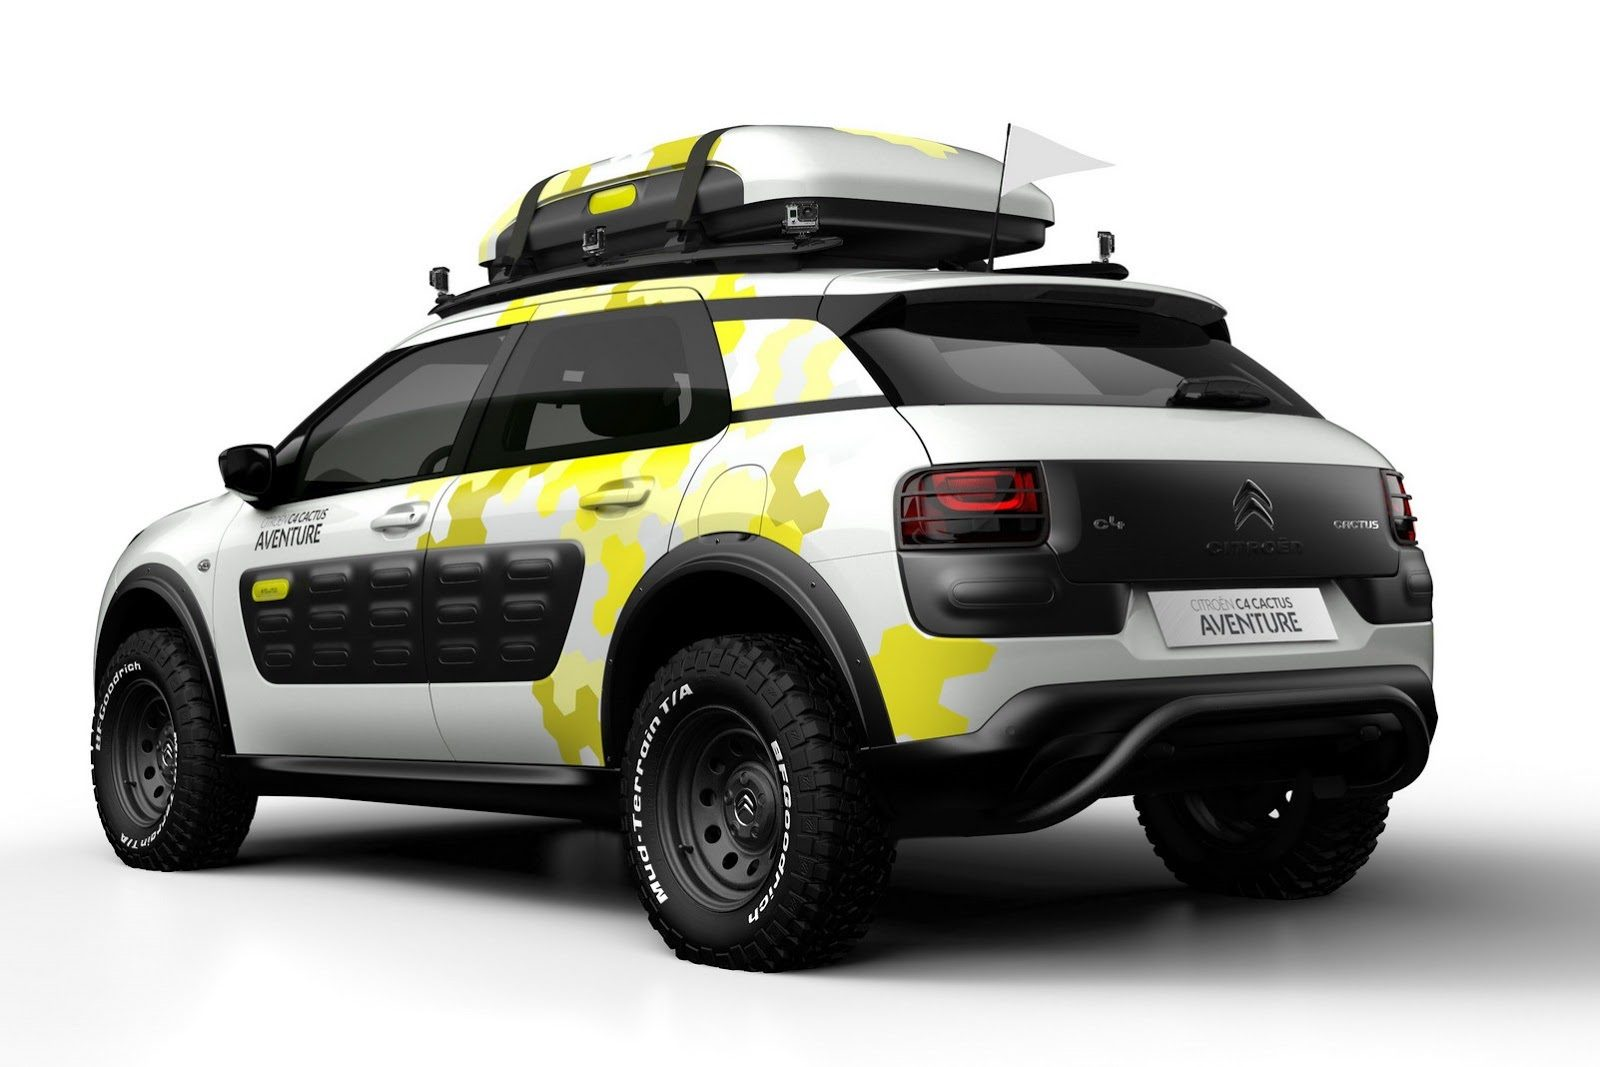 foto citroen c4 cactus aventure concept citroen c4 cactus aventure 002. Black Bedroom Furniture Sets. Home Design Ideas